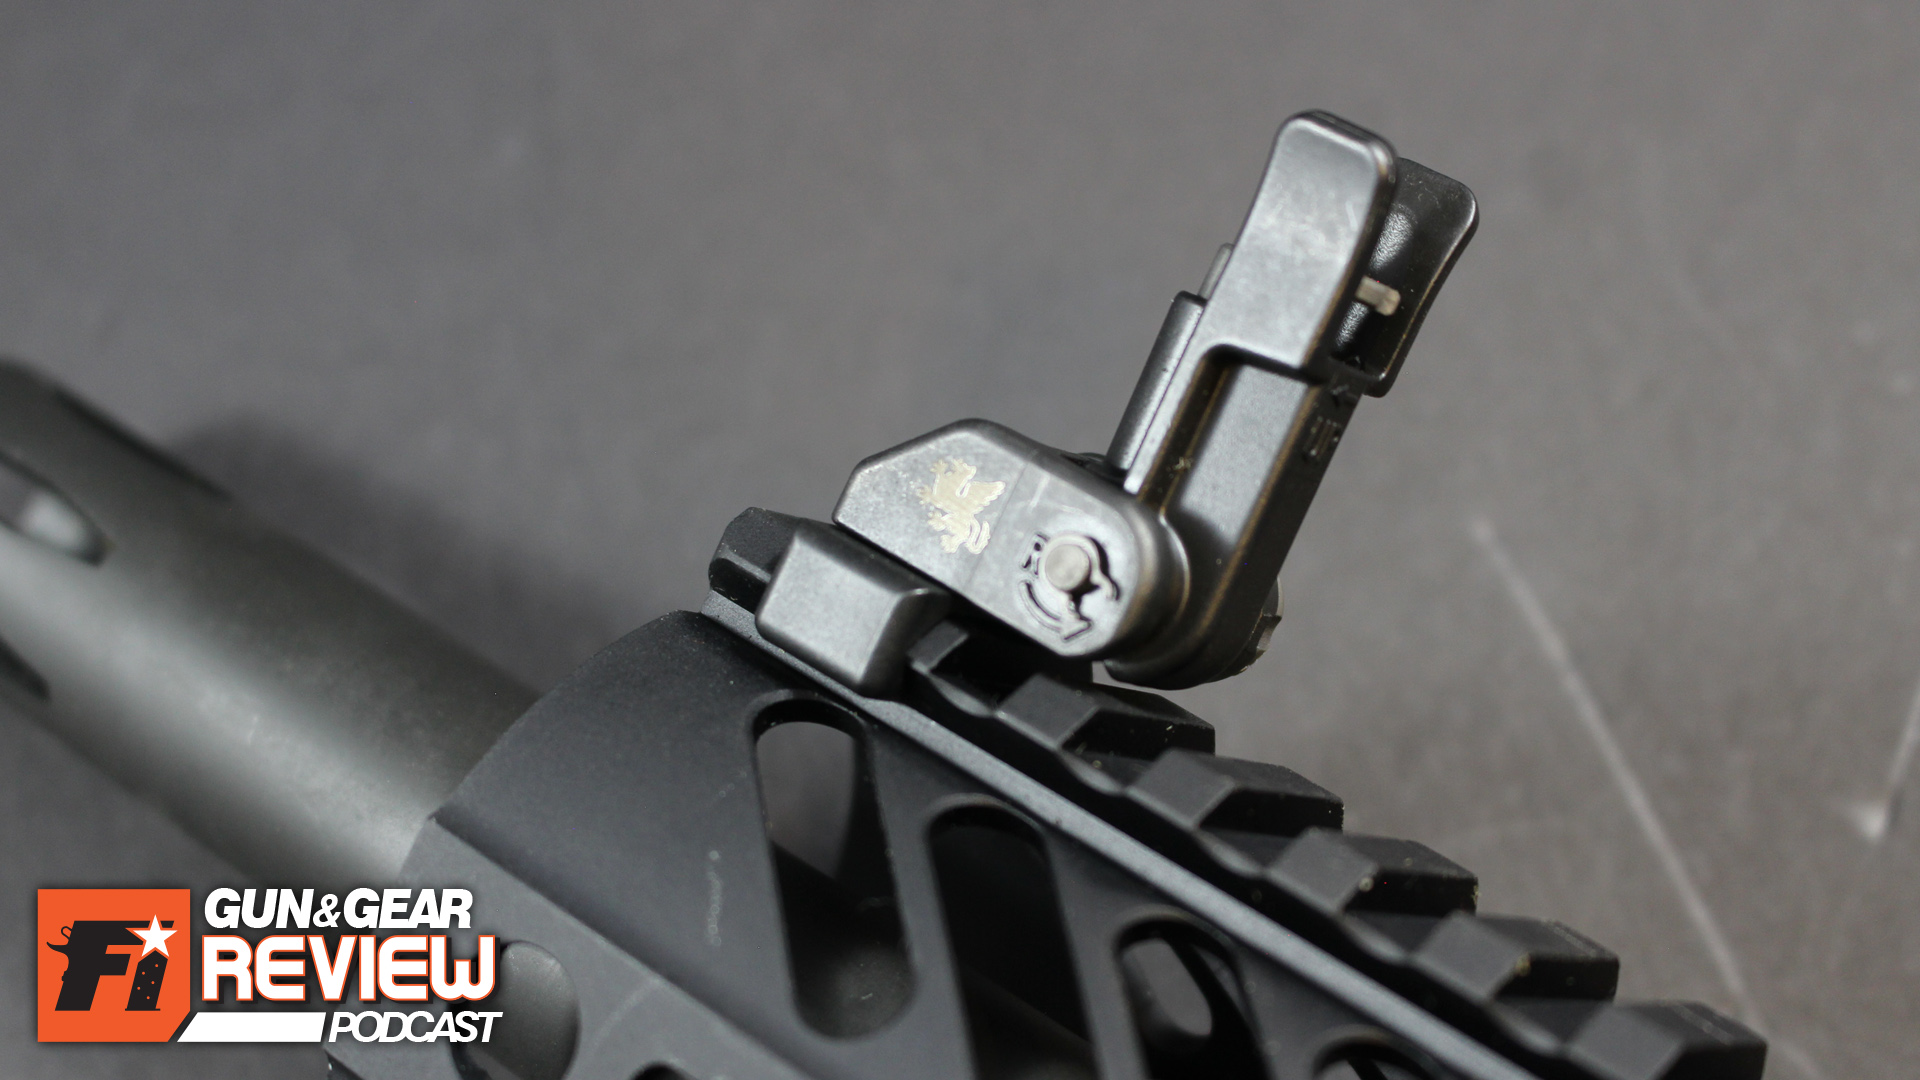 The M²Sights don't have a spring-loaded rapid deployment feature, but its not needed in my opinion. -